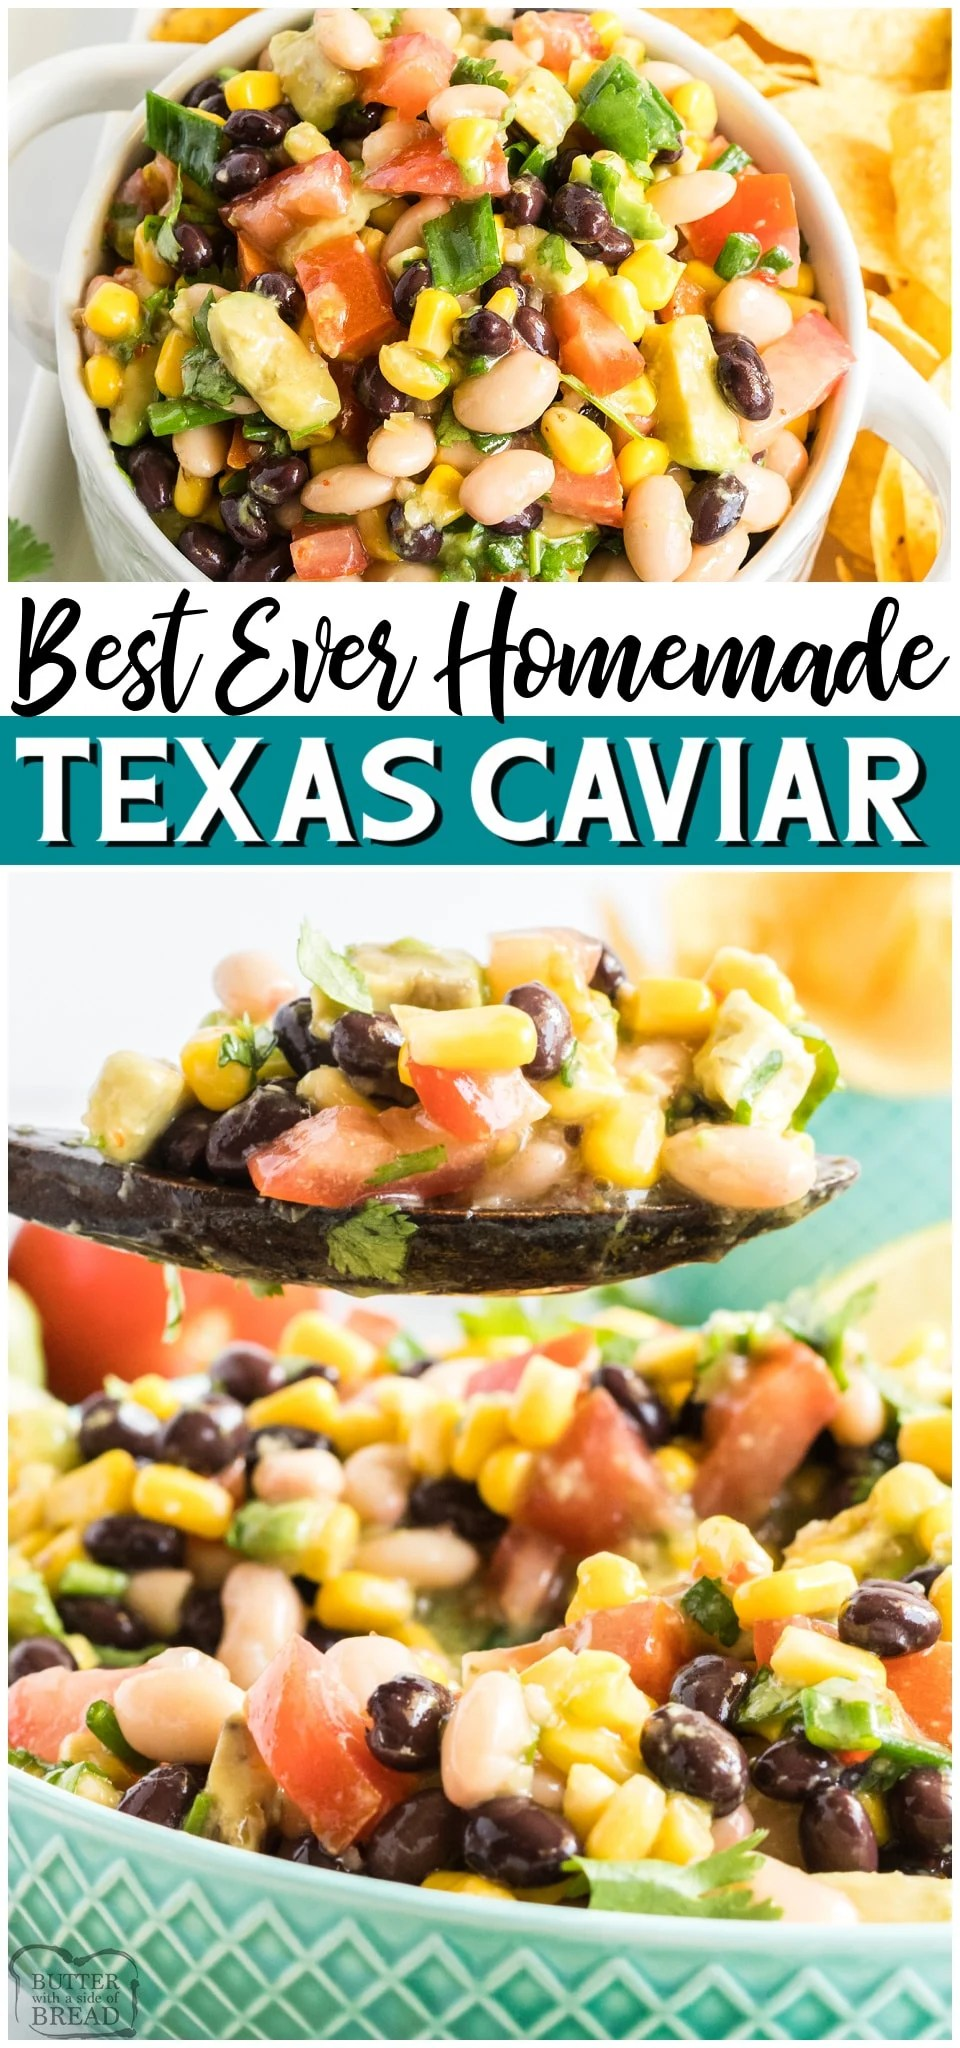 Best Texas Caviar recipe packed with fresh flavors like sweet corn, cilantro, tomato & avocado. Easy Texas Caviar Bean Dip is a popular savory appetizer perfect for game day! #gameday #dip #beandip #appetizer #CowboyCaviar #TexasCaviar #easyrecipe from BUTTER WITH A SIDE OF BREAD